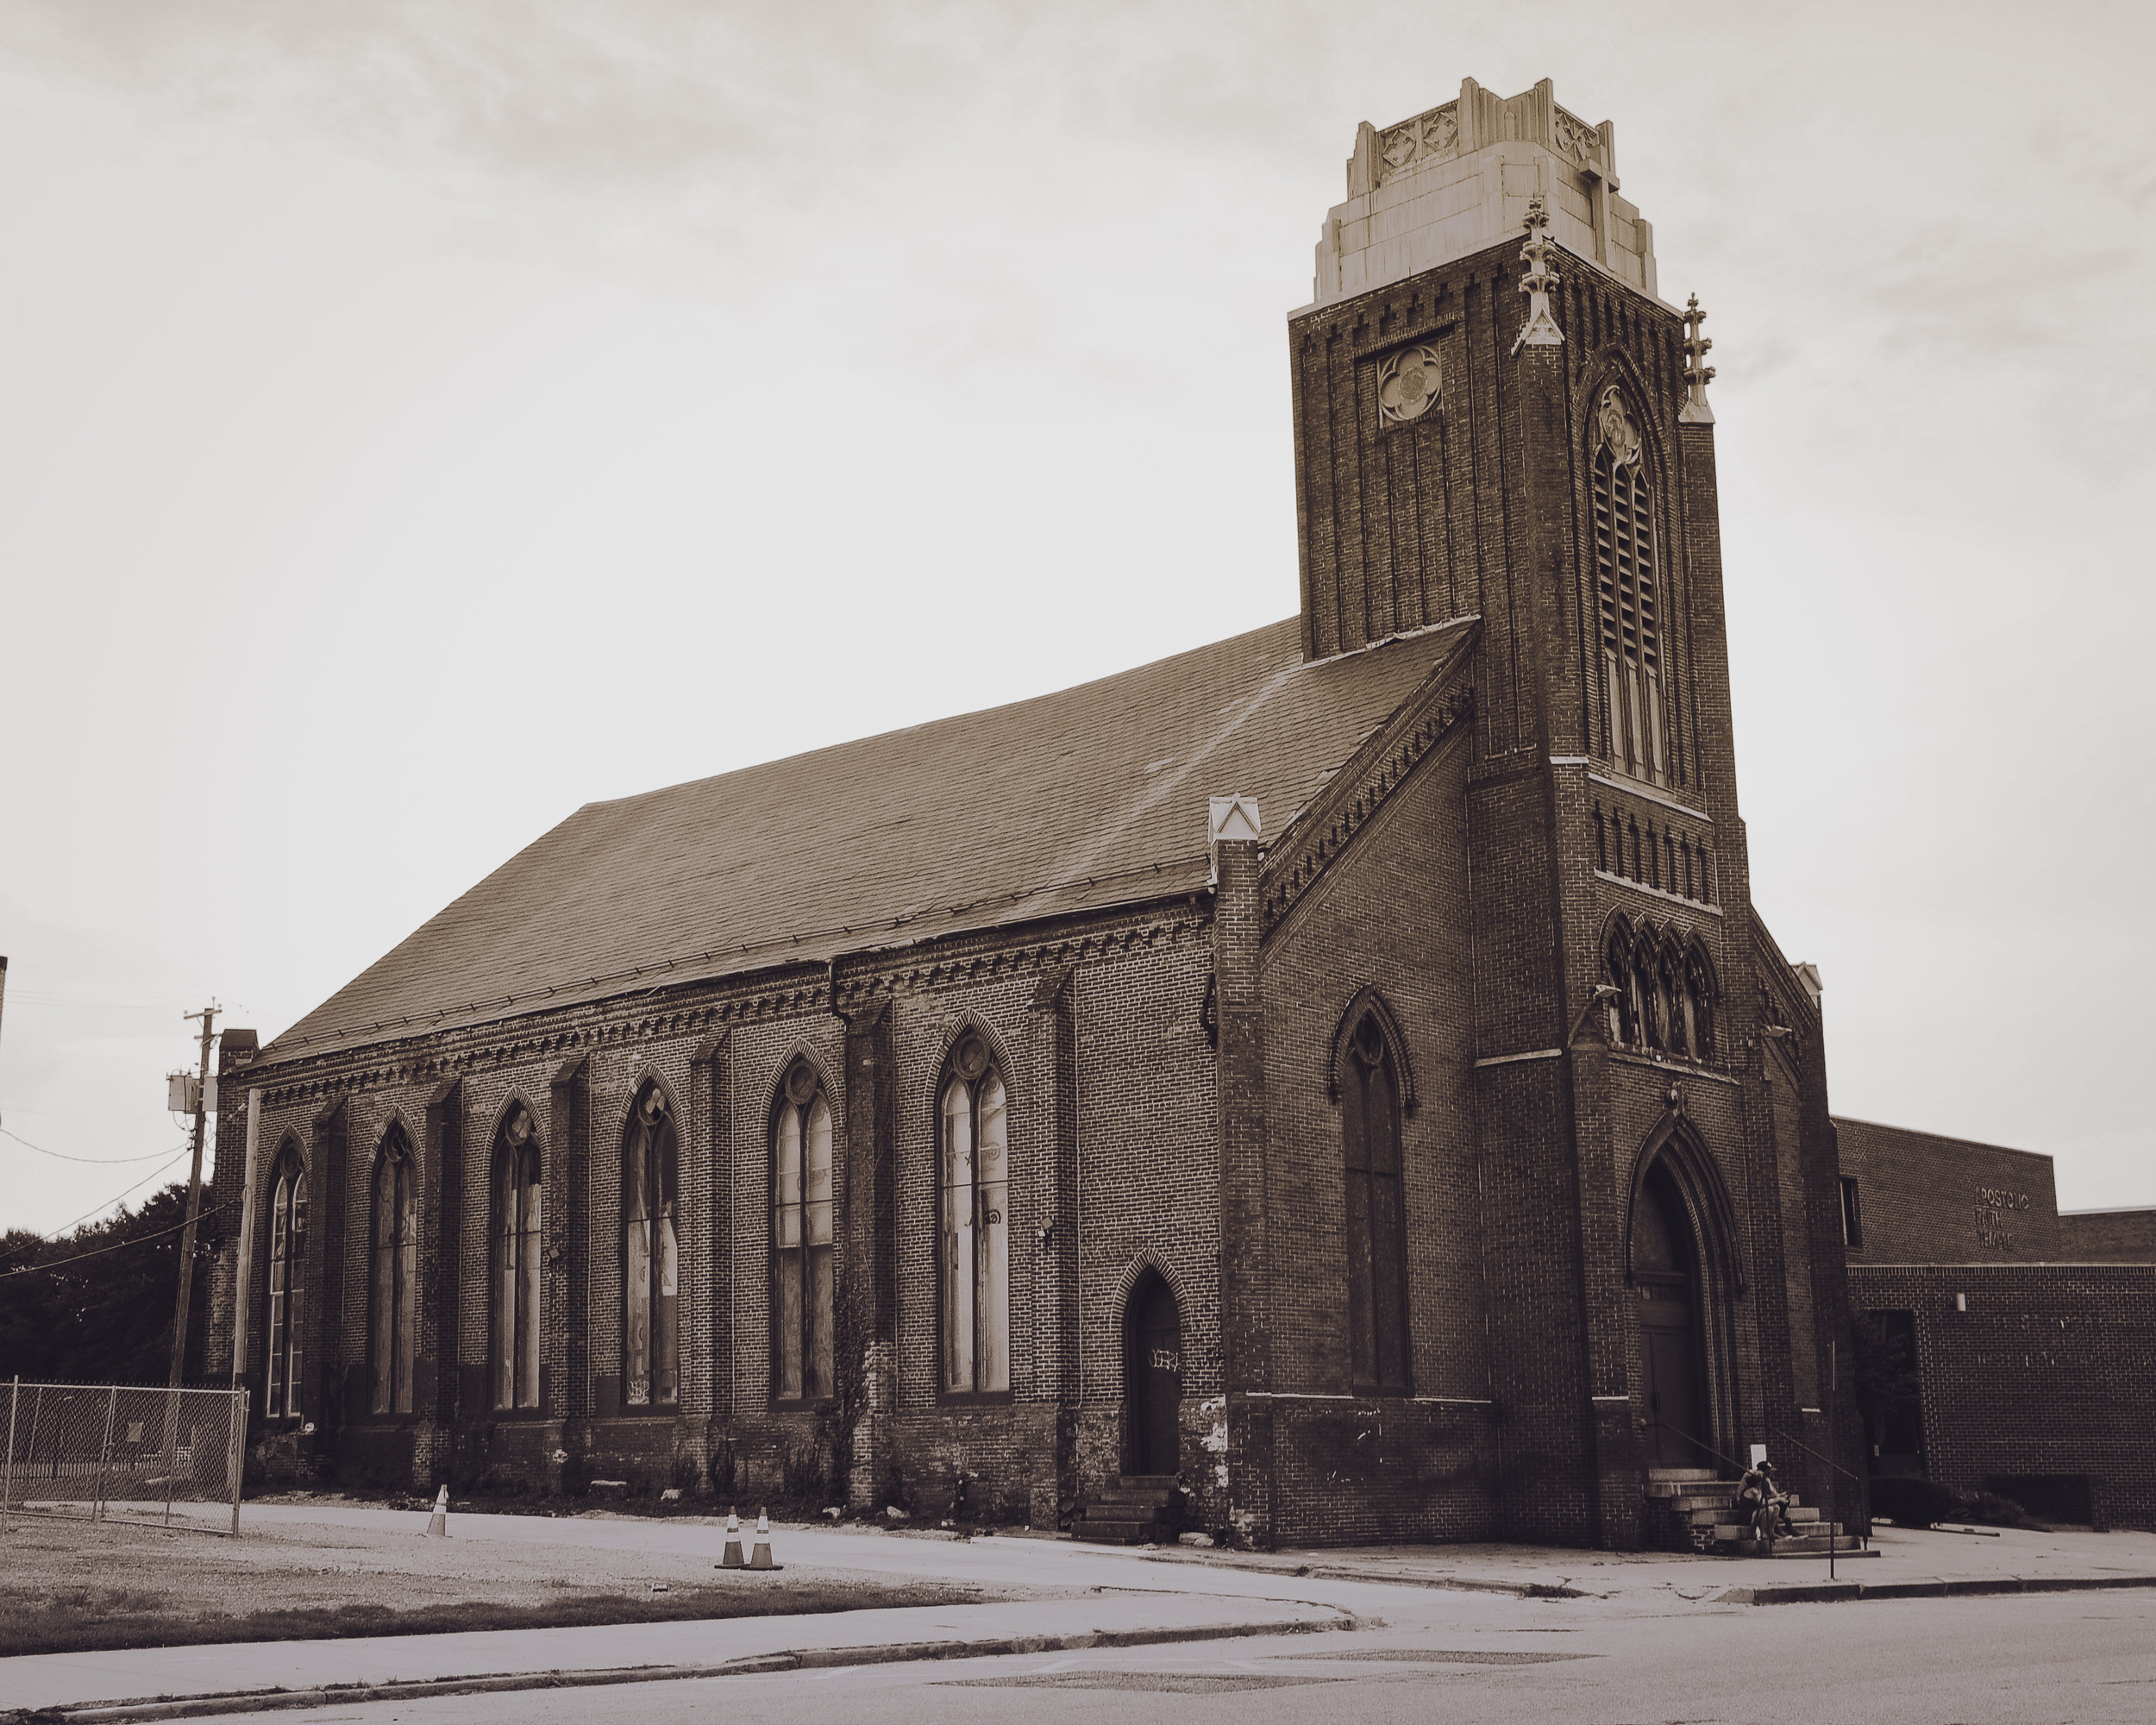 Old Church in Baltimore City Photo: Rose Anderson, 2018